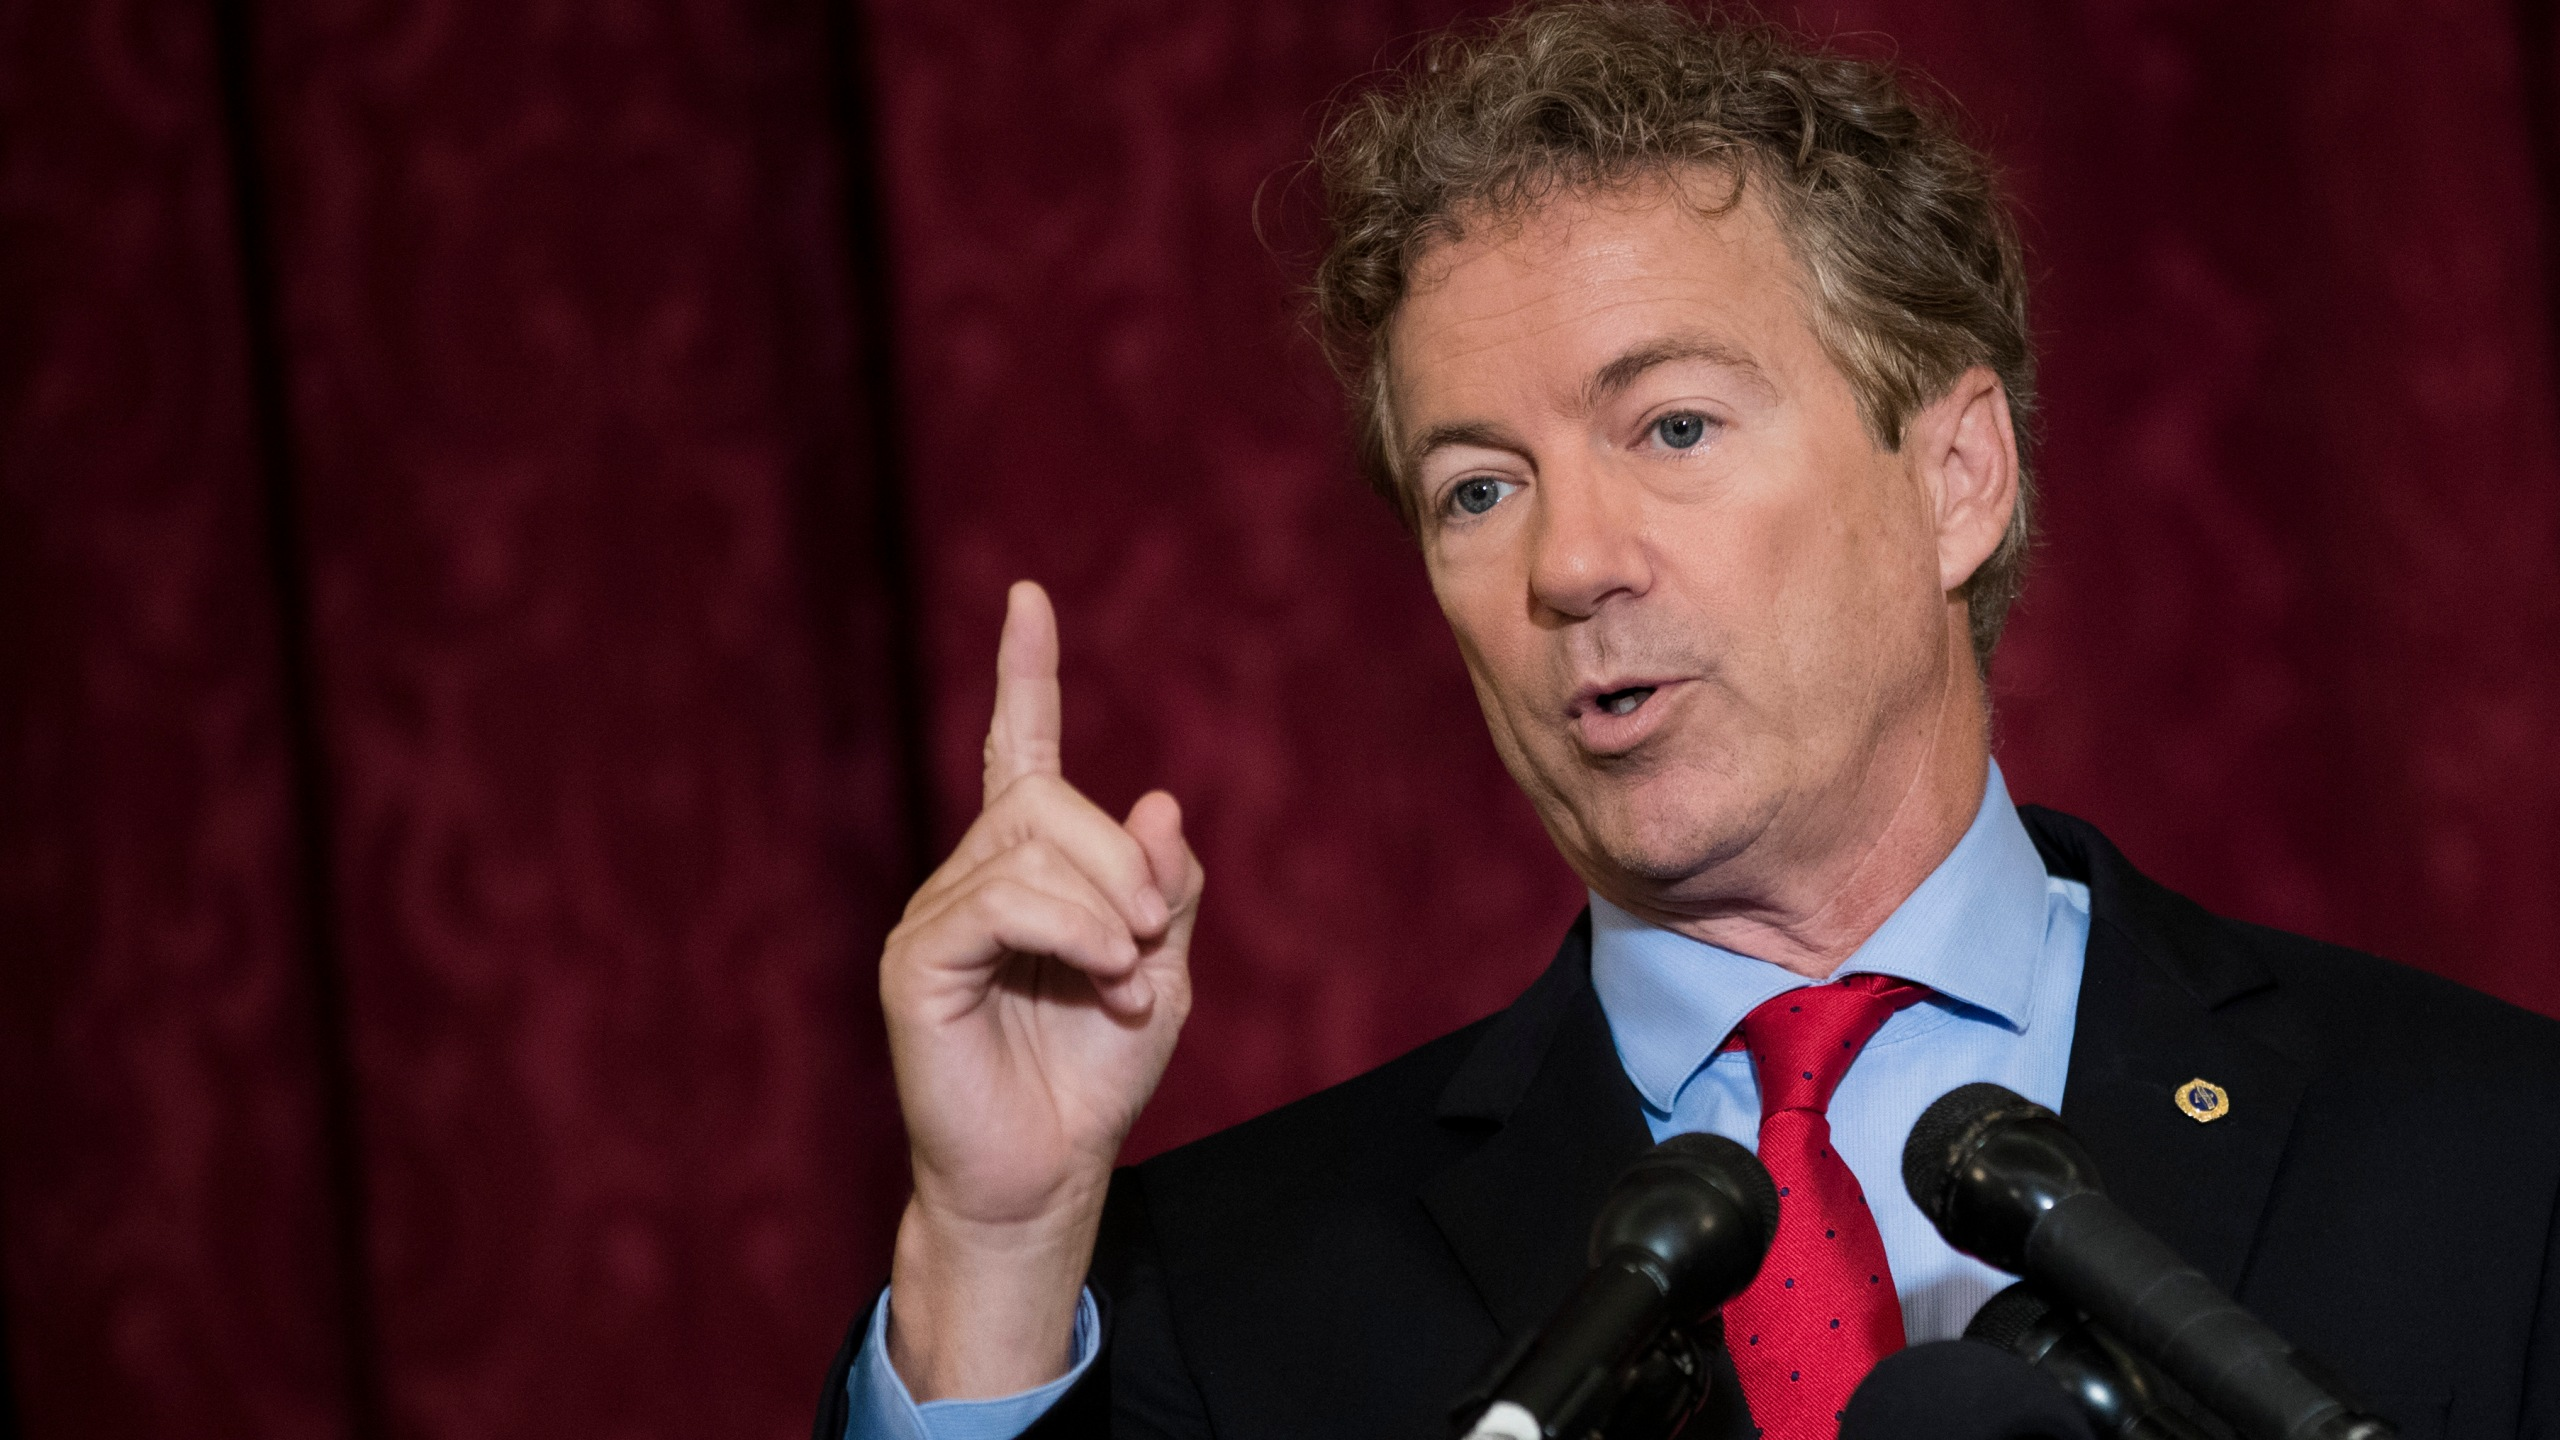 Sen. Rand Paul speaks during a press conference on Capitol Hill, Oct. 12, 2017. (Credit: Drew Angerer/Getty Images)